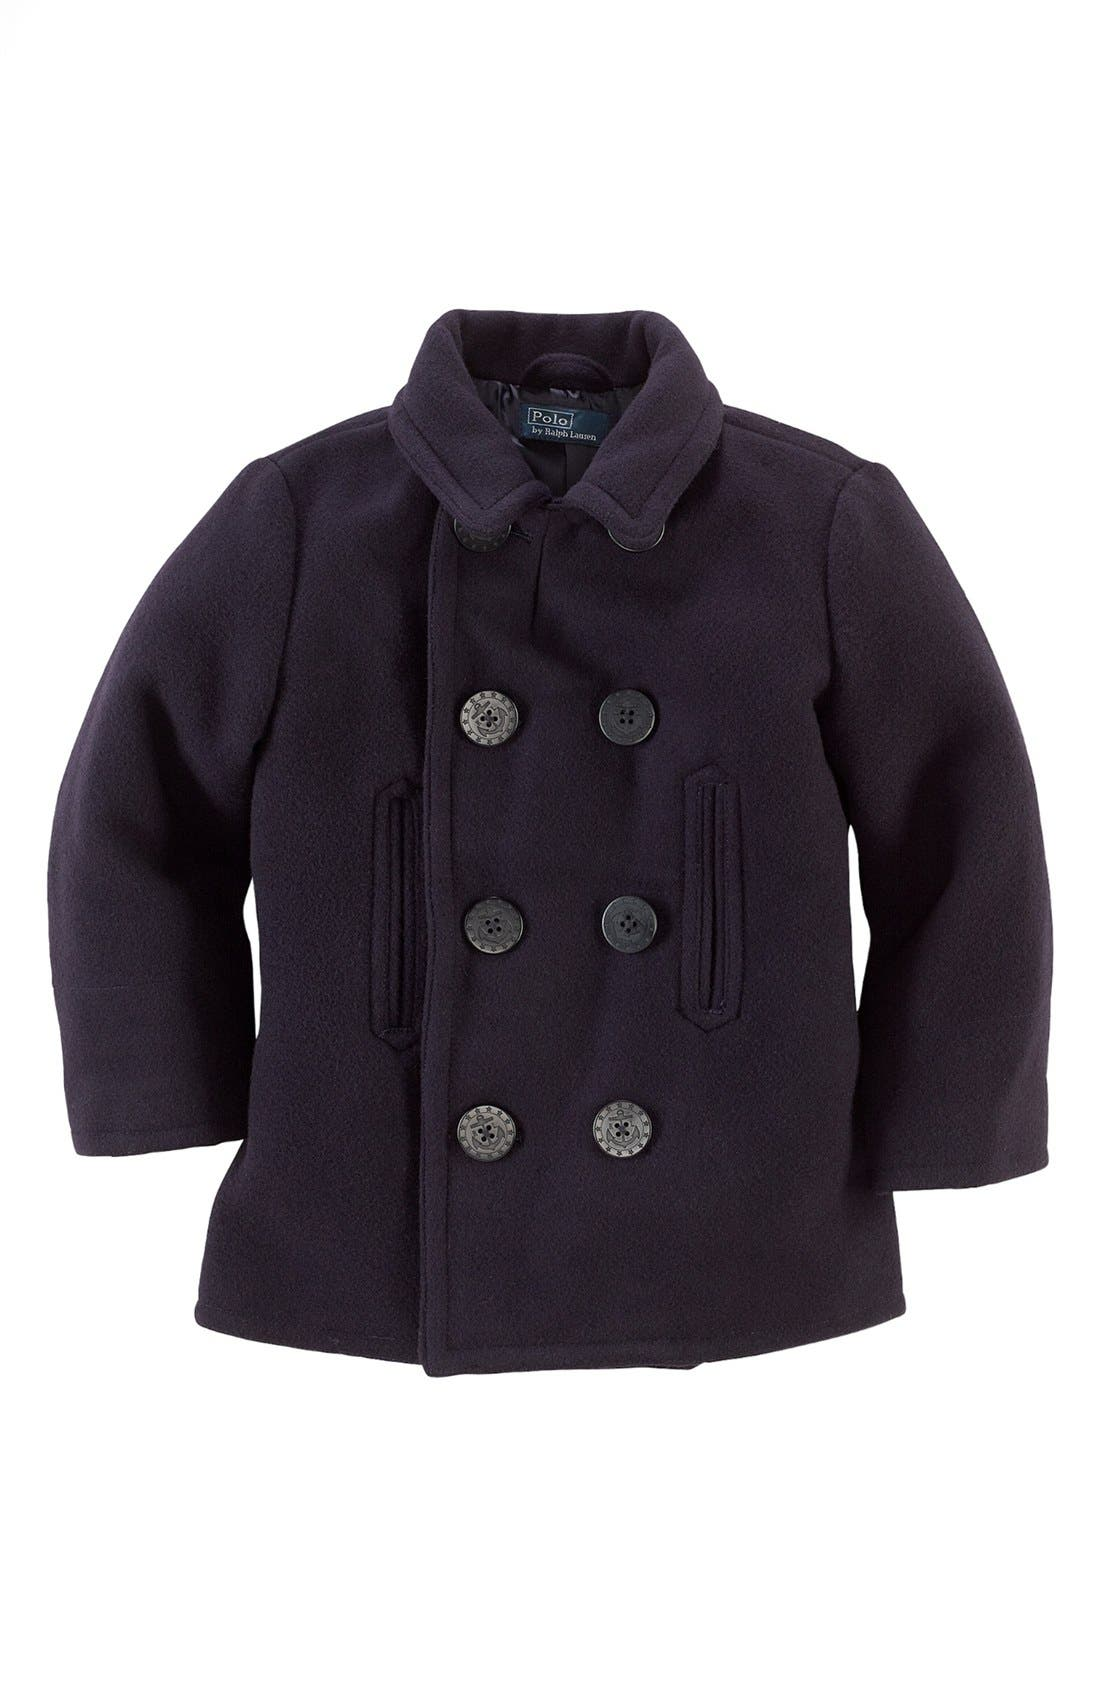 Main Image - Ralph Lauren Naval Peacoat (Toddler)